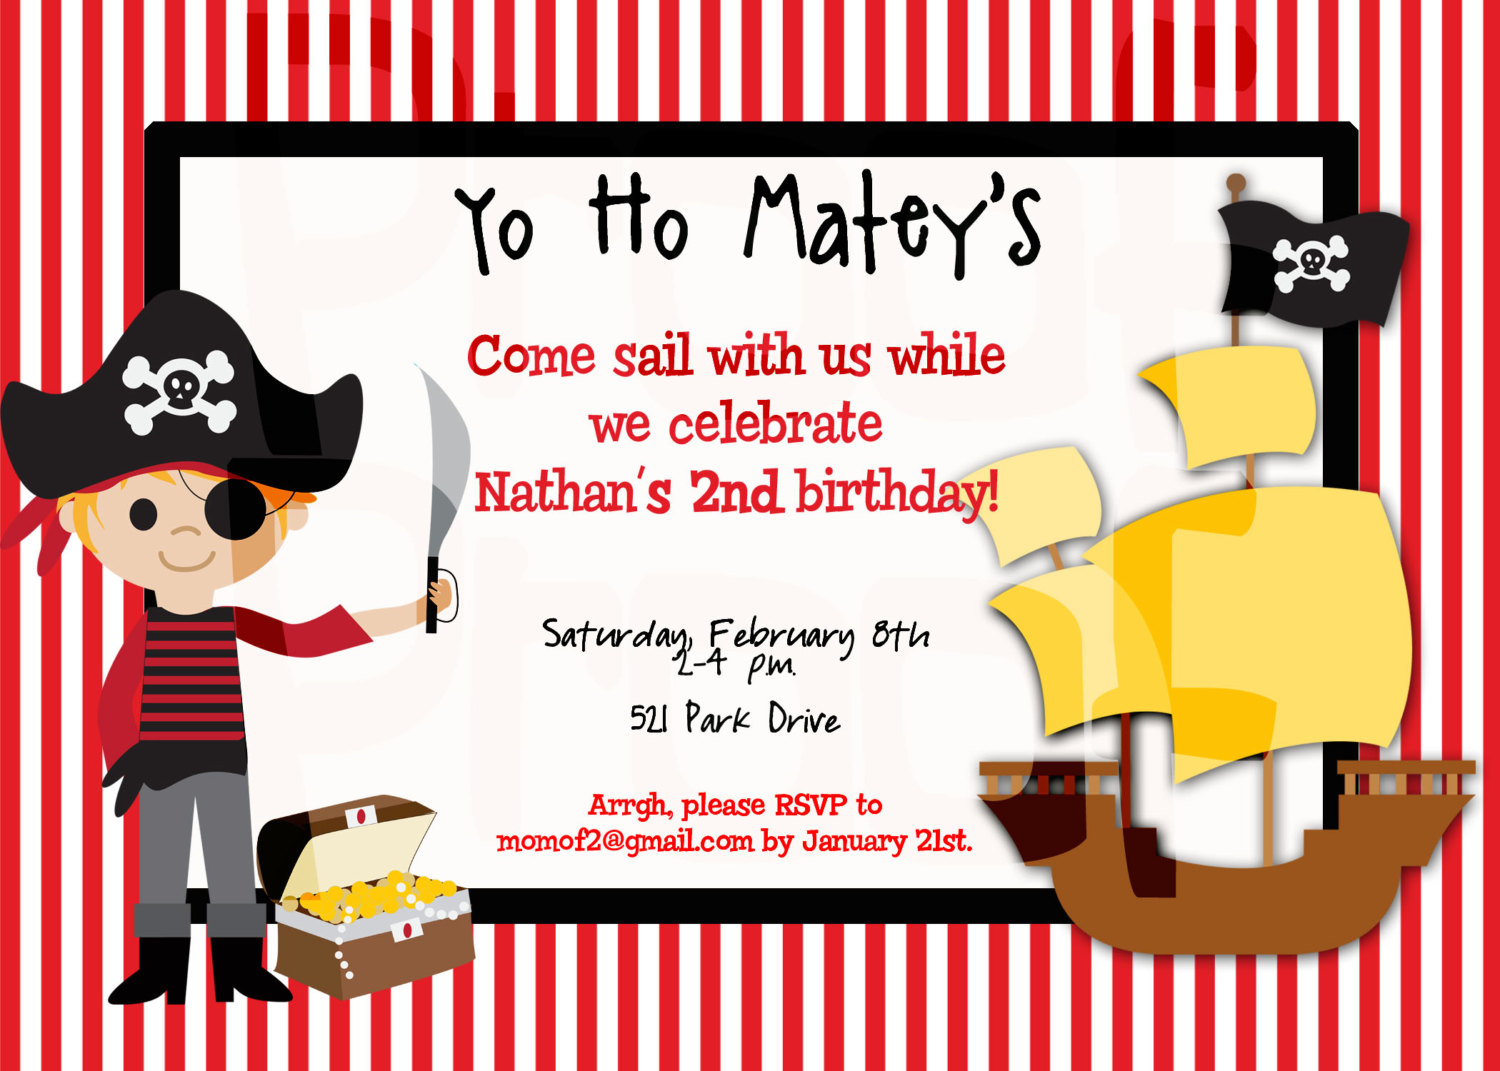 pirate themed birthday party invitation ideas ; pirate-birthday-party-invitations-is-one-of-the-best-idea-for-you-to-make-your-own-Birthday-invitation-design-1